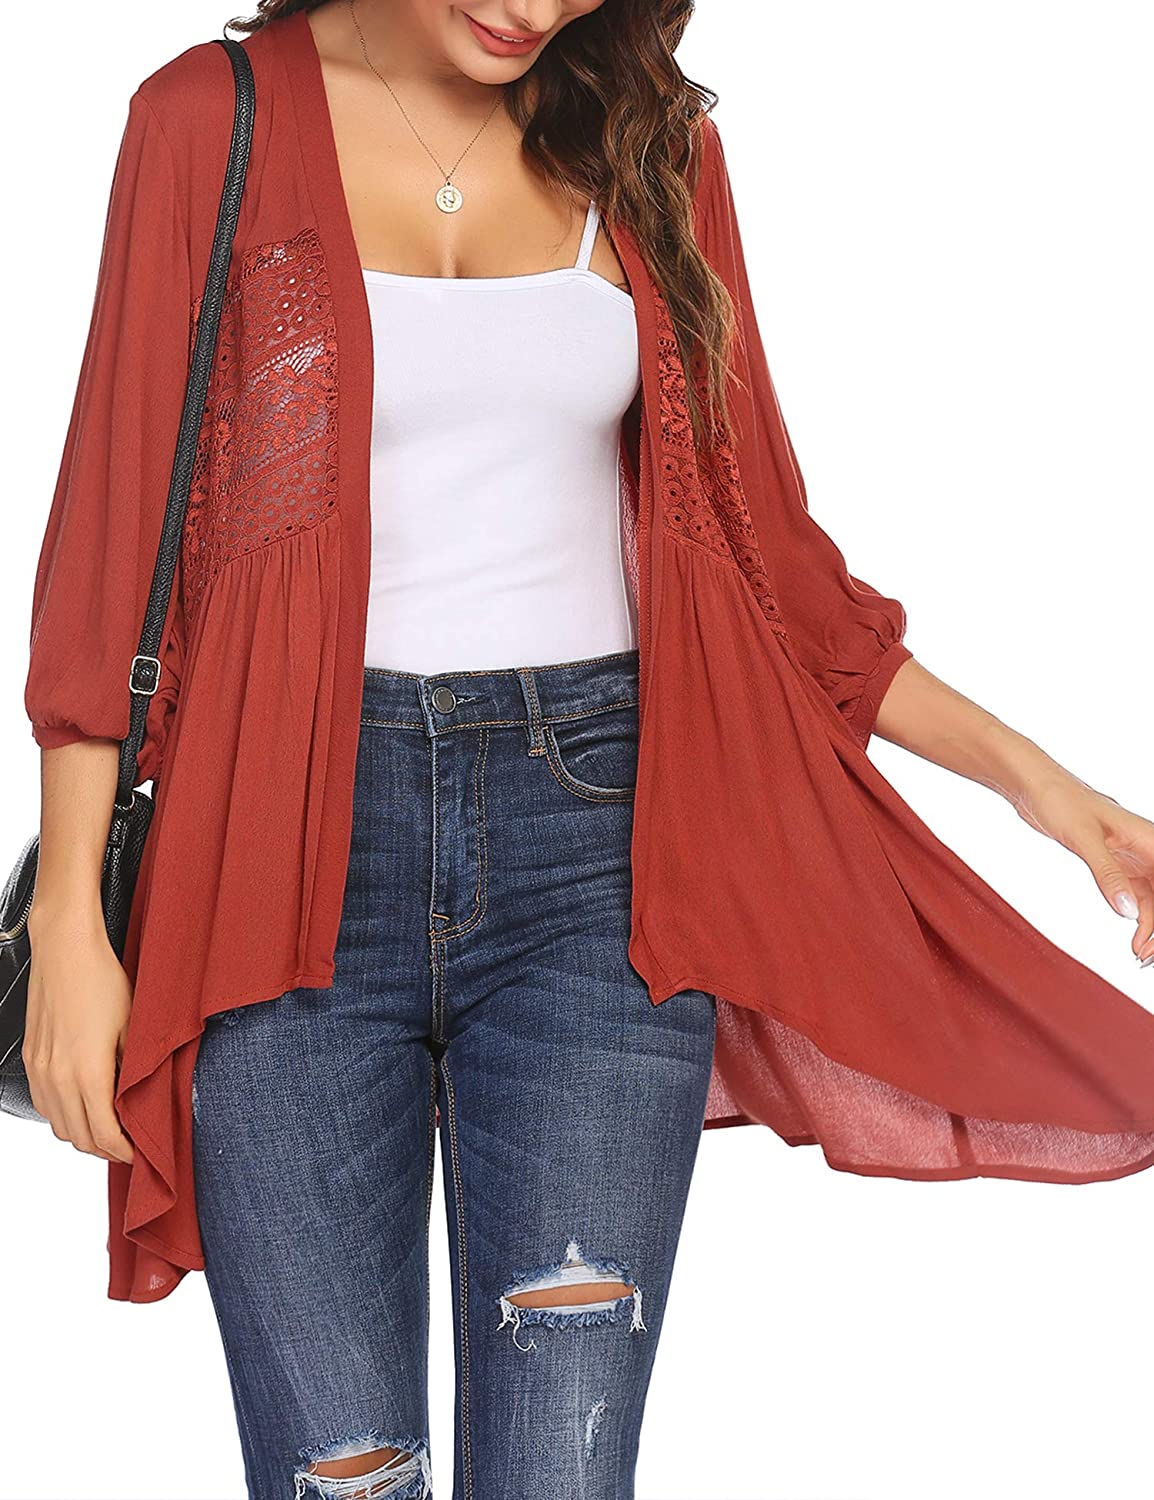 Hotouch Womens Cardigan Open Front 3//4 Sleeve Lace Lightweight Beach Summer Cover Up Tops